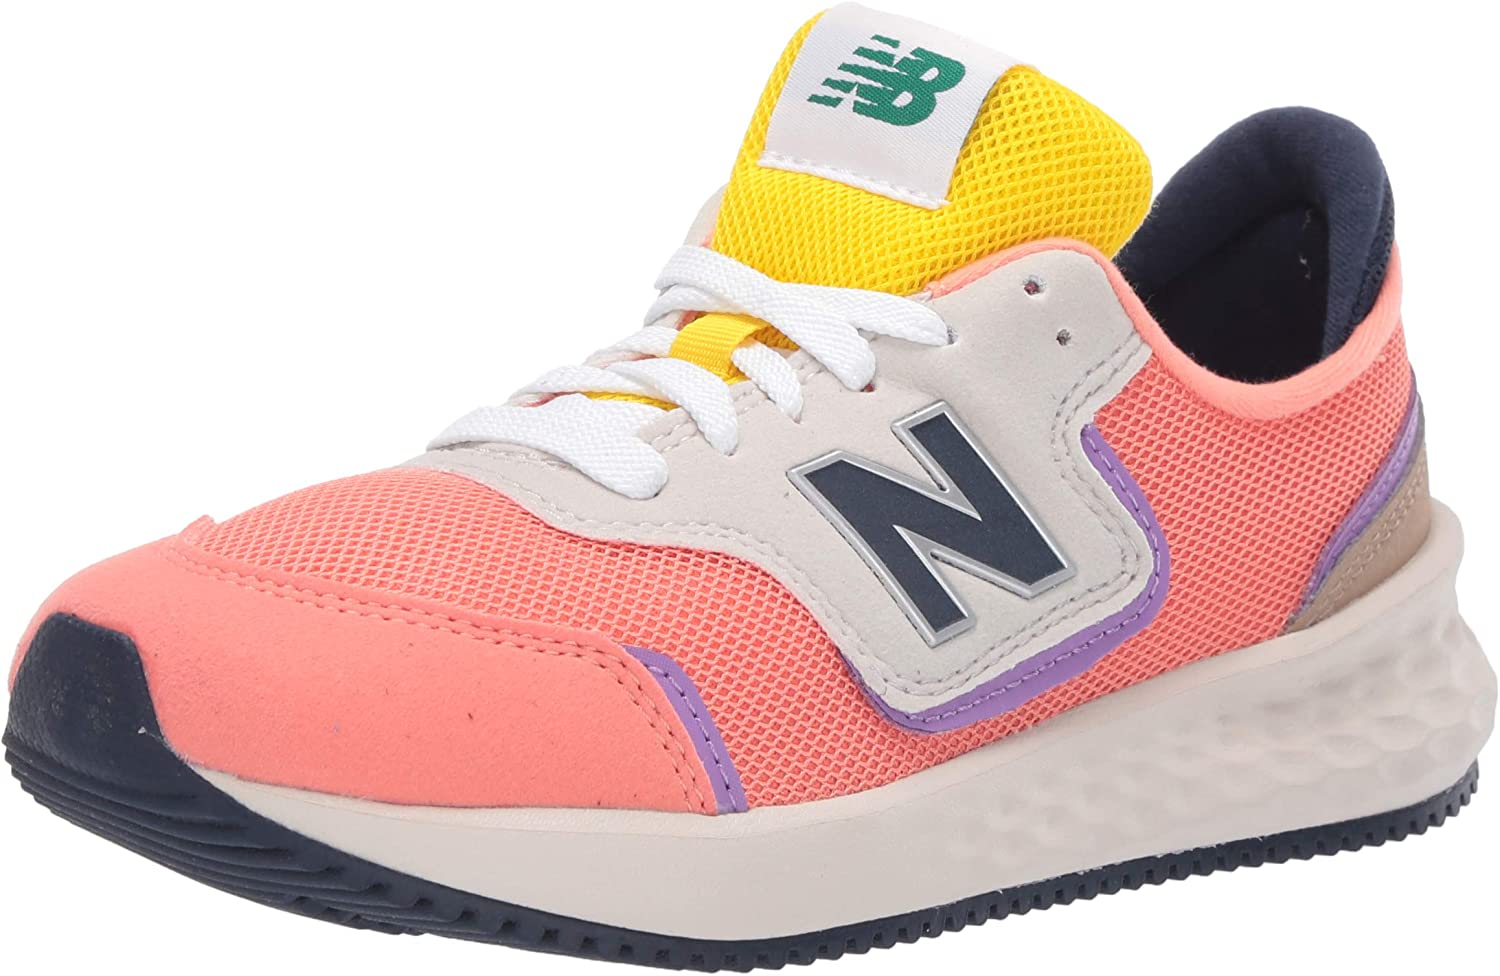 New Balance Kids' Fresh Foam X70 Sneaker Lace-up Year-end annual account V1 Very popular!